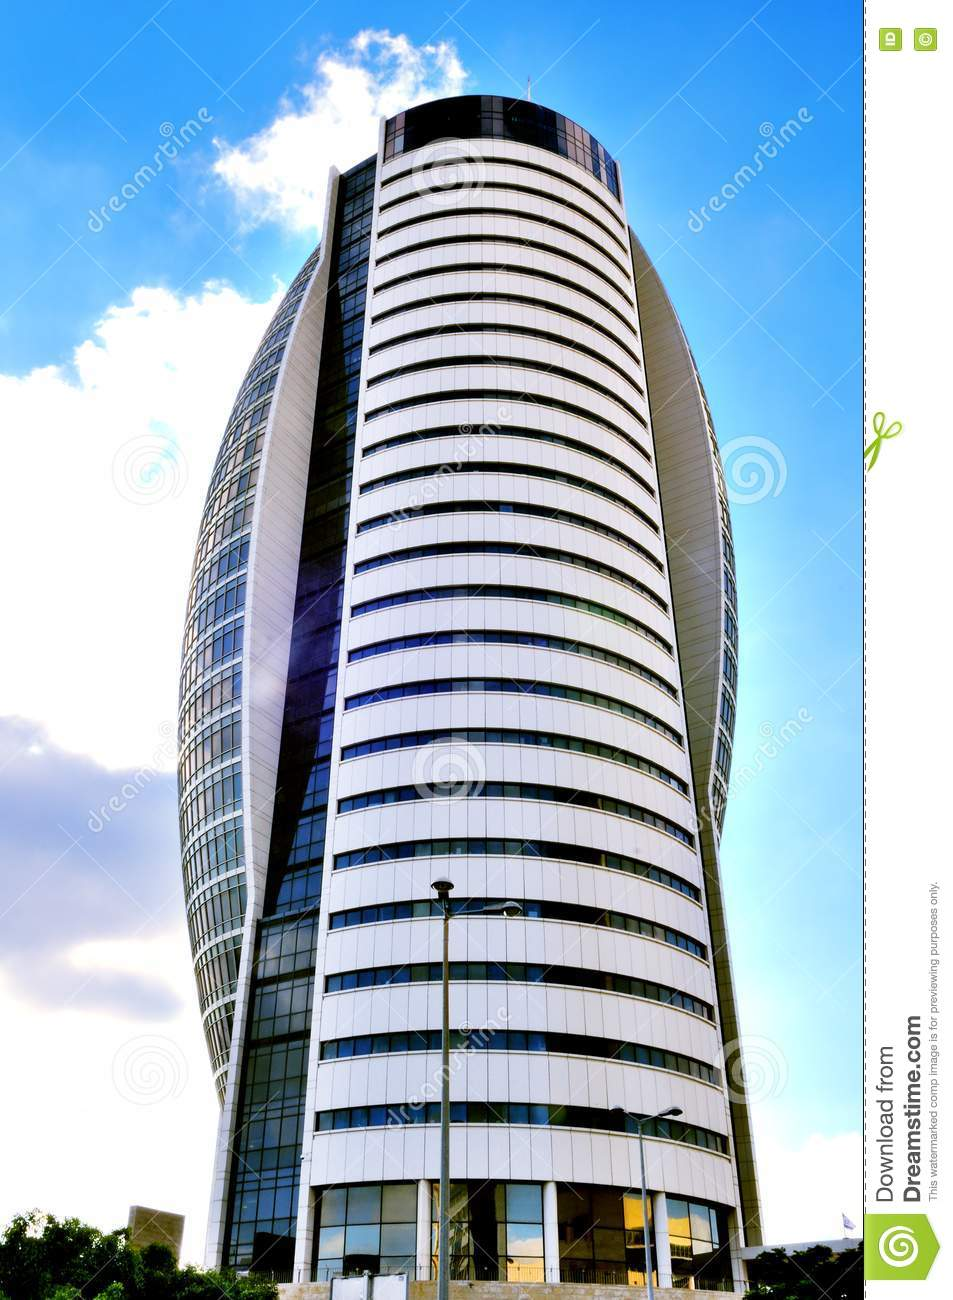 High-rise Building Stock Photos - Image: 20324133